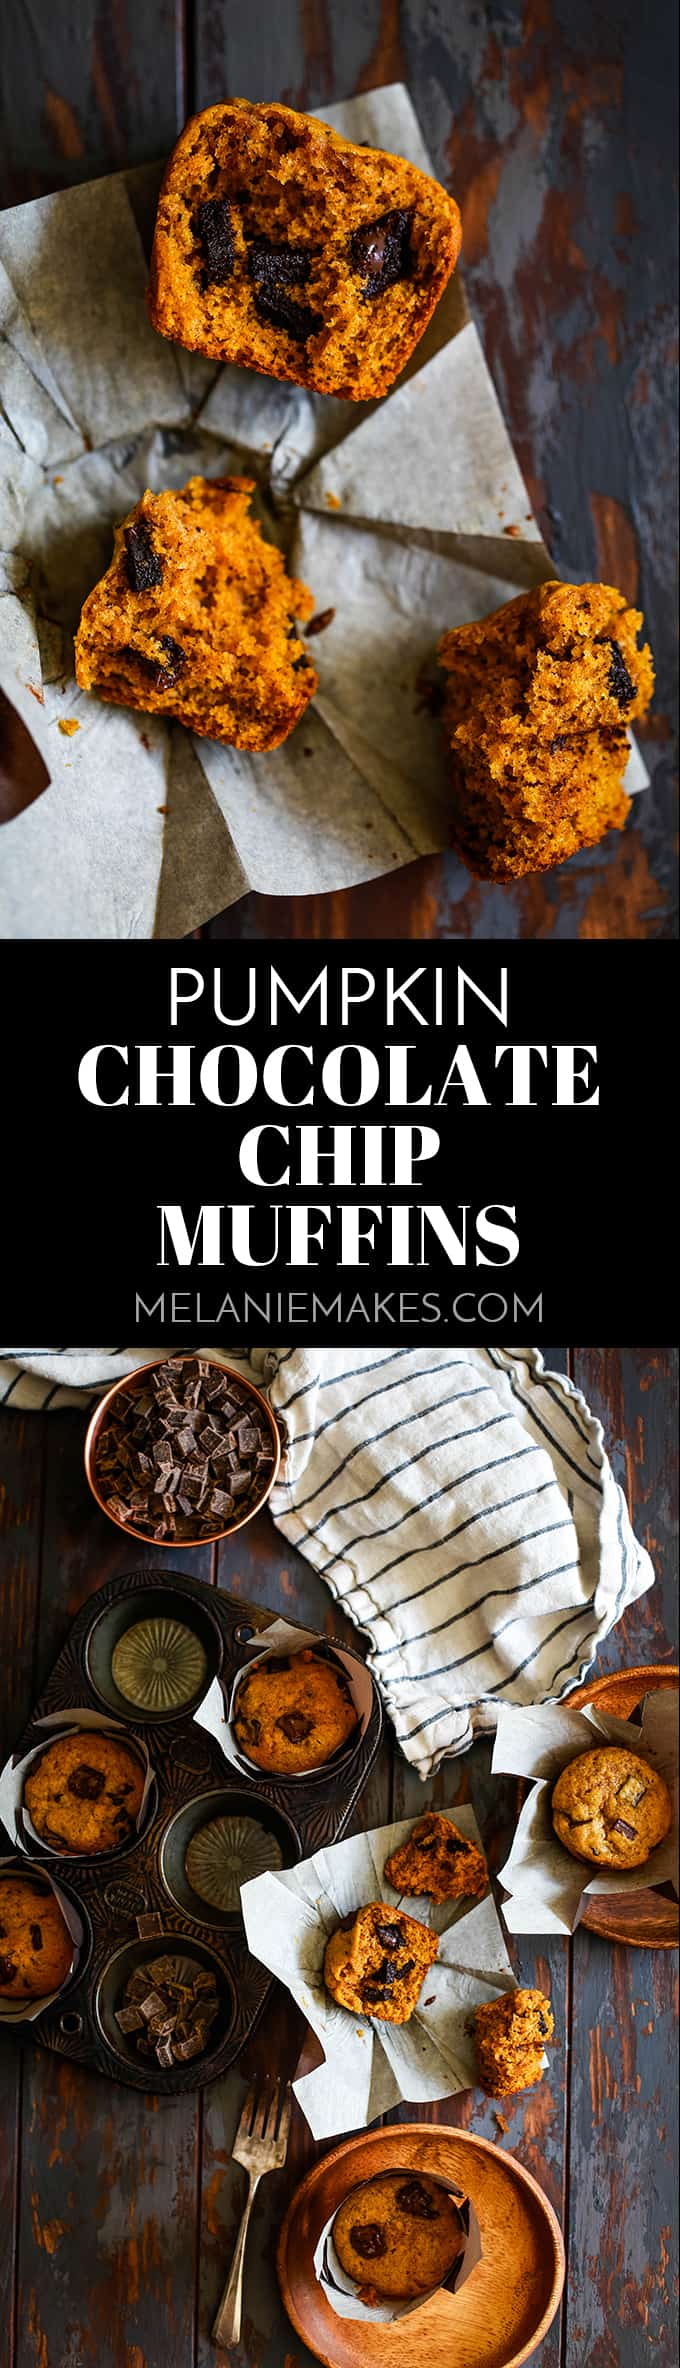 These Pumpkin Chocolate Chip Muffins take just 10 minutes to prepare, are spiked with cinnamon, cloves and allspice and studded with chocolate chips. #pumpkin #chocolatechip #muffins #breakfast #brunch #easyrecipe #autumn